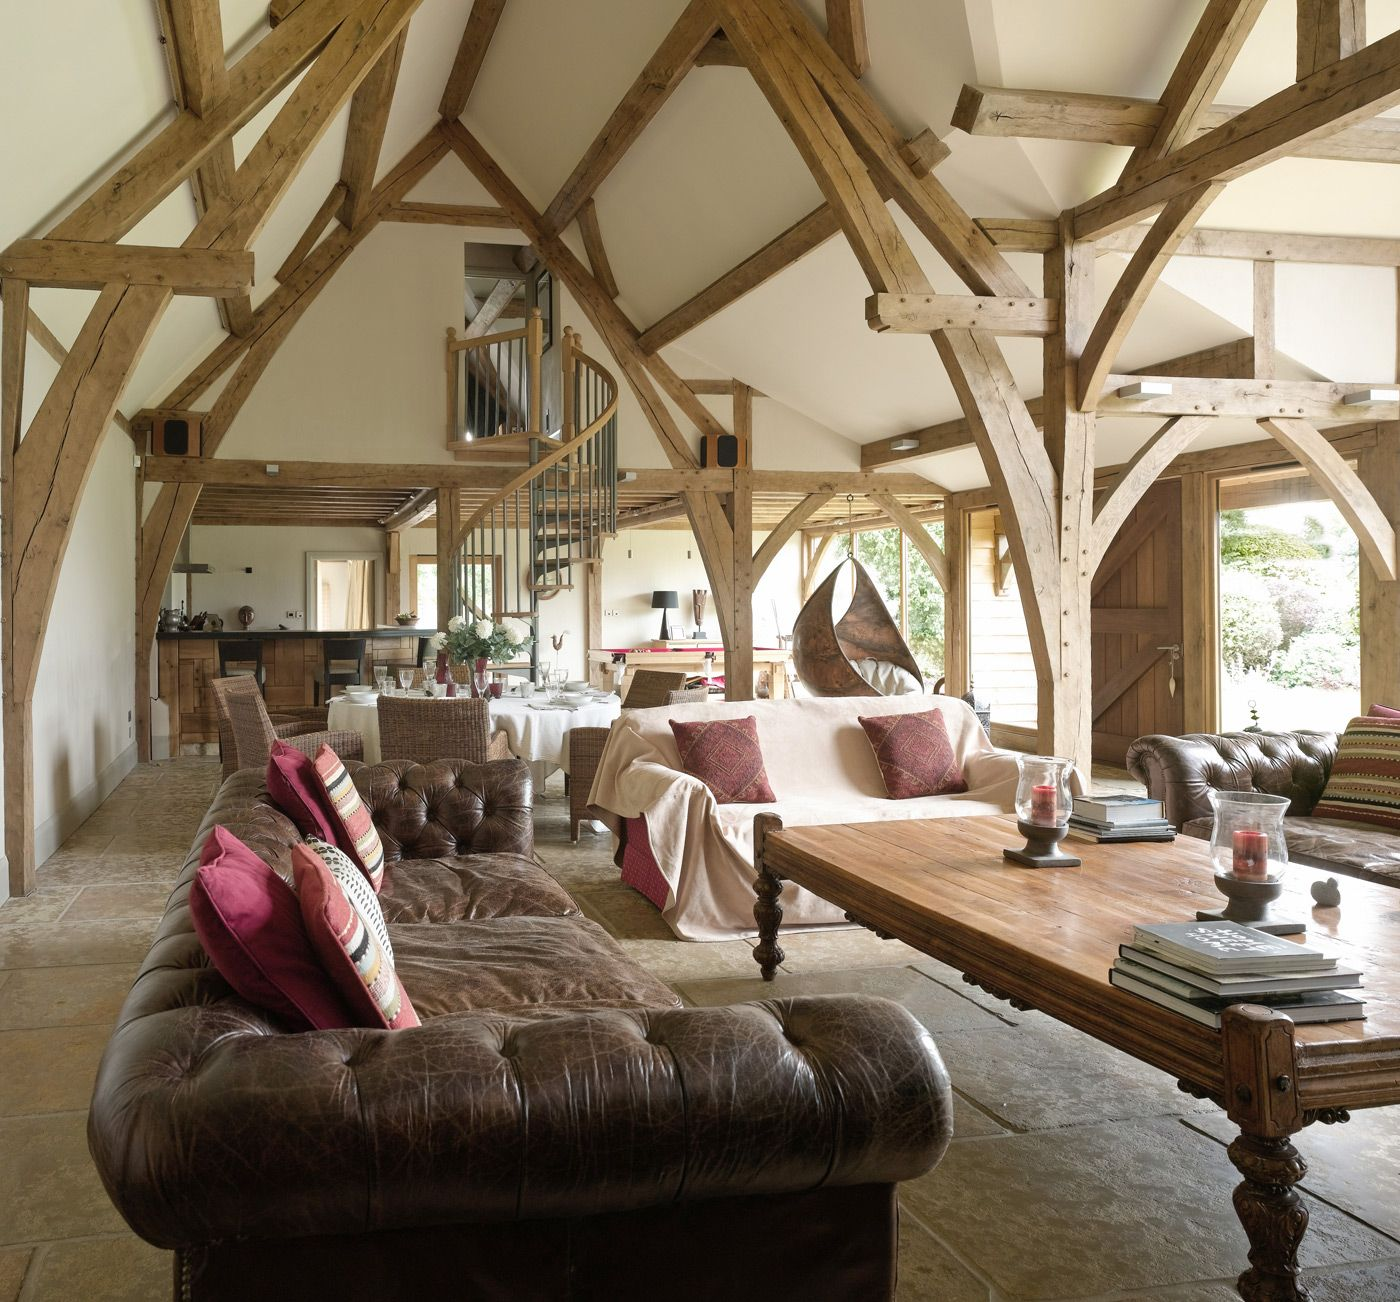 An Oak Frame Home Built For Under 200k: Pin By Timber Frame HQ On Interior Photos Of Timber Frames